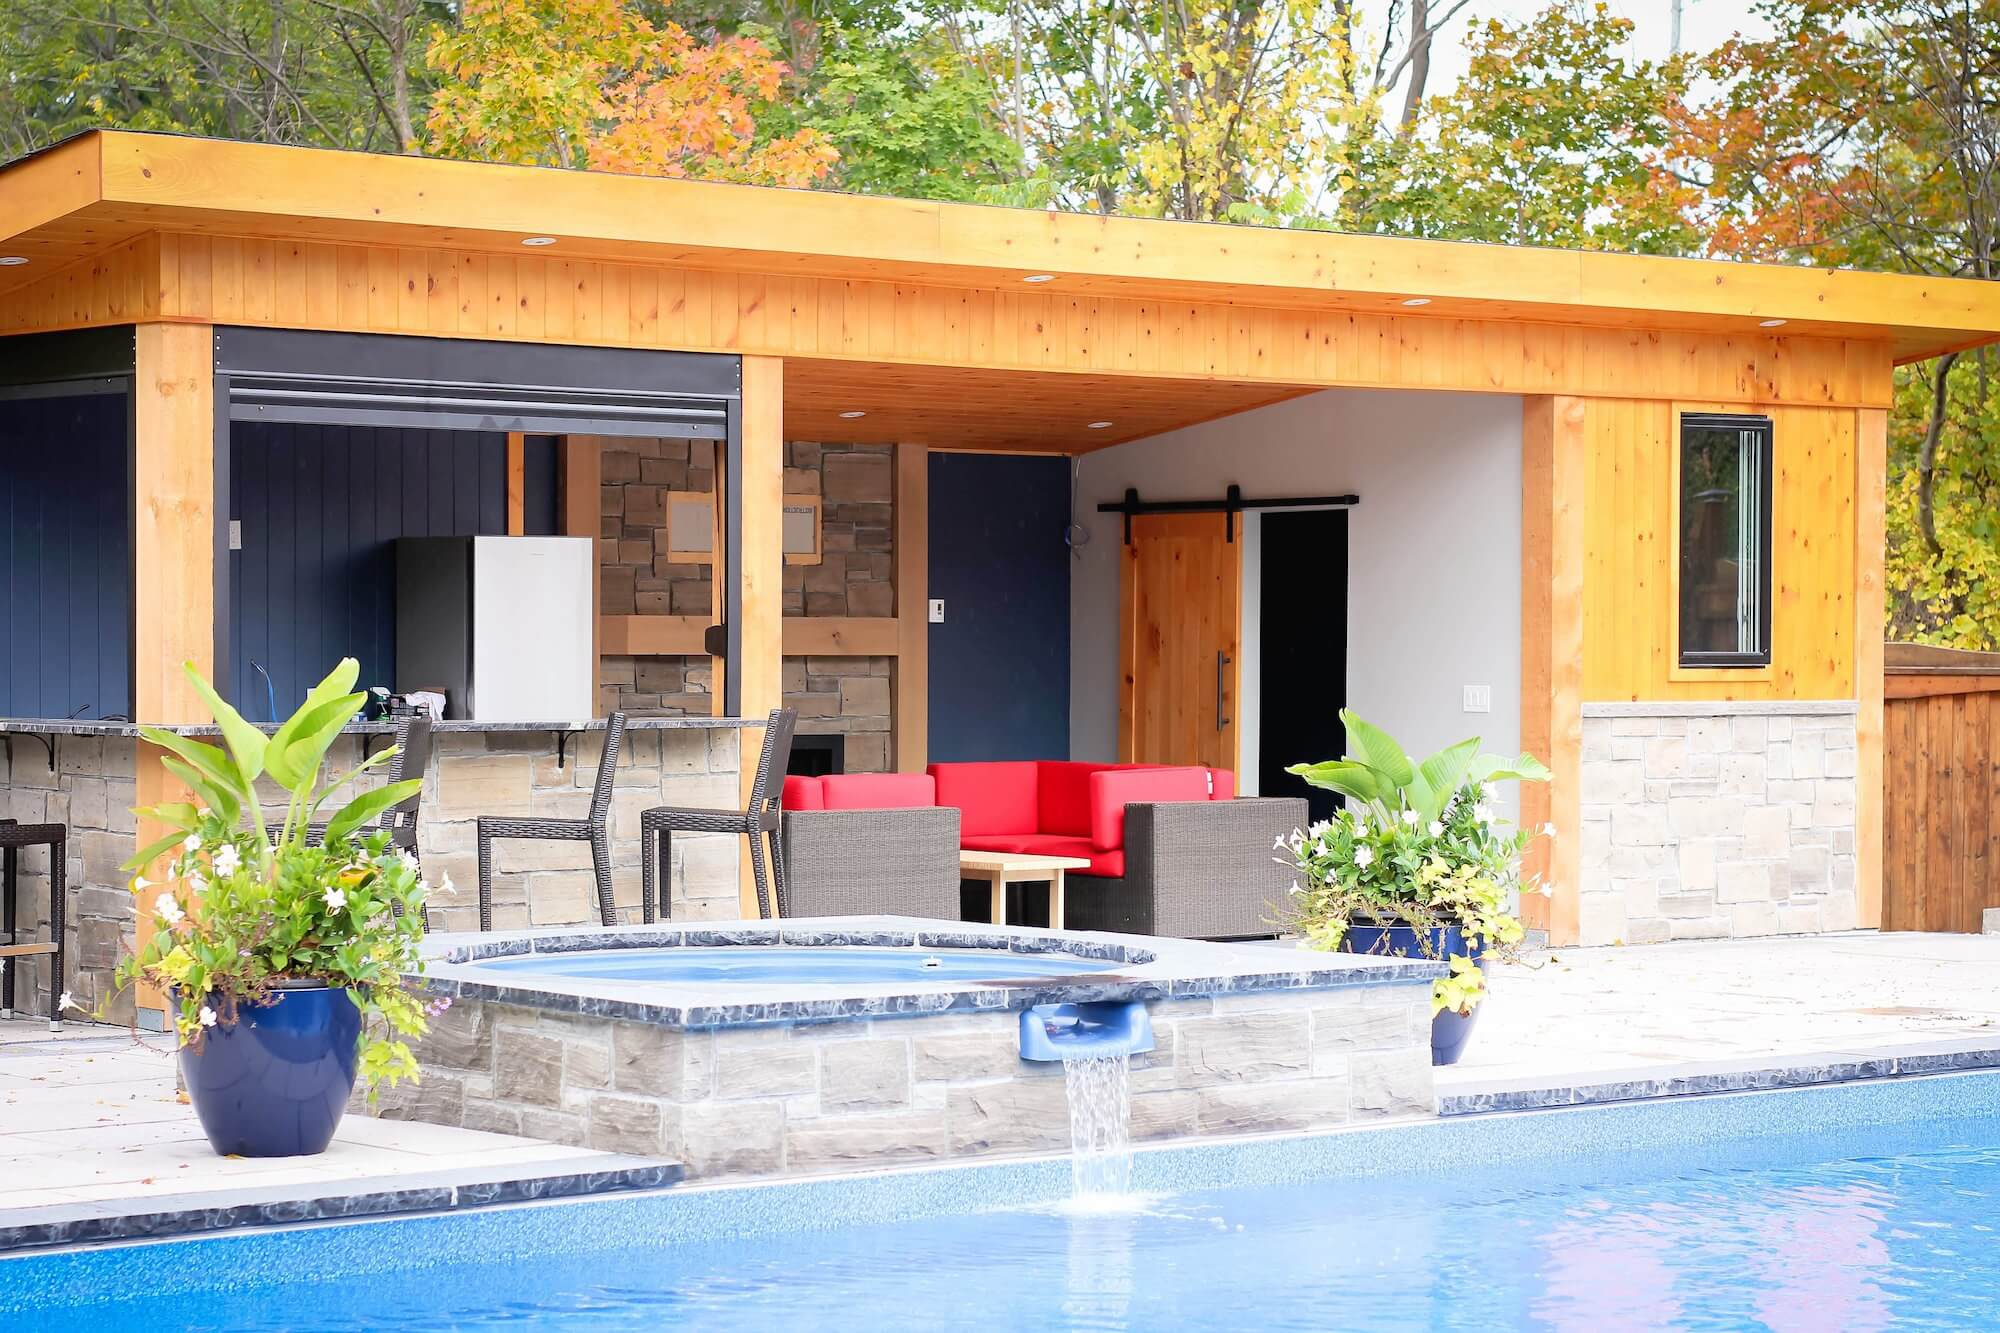 mnh-construction-pool-cabana-retreat-01.jpg